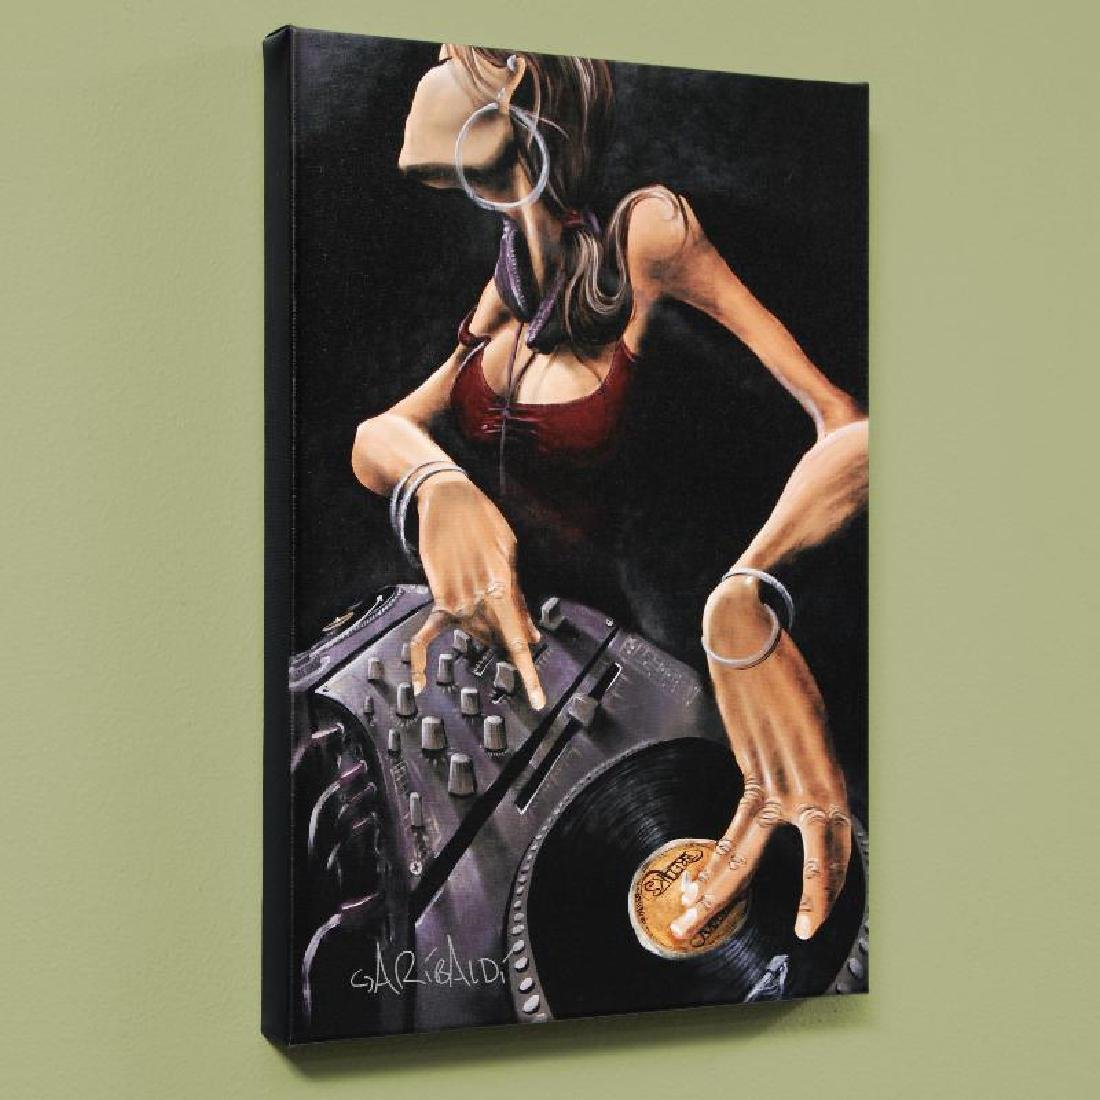 """DJ Jewel"" LIMITED EDITION Giclee on Canvas by David"